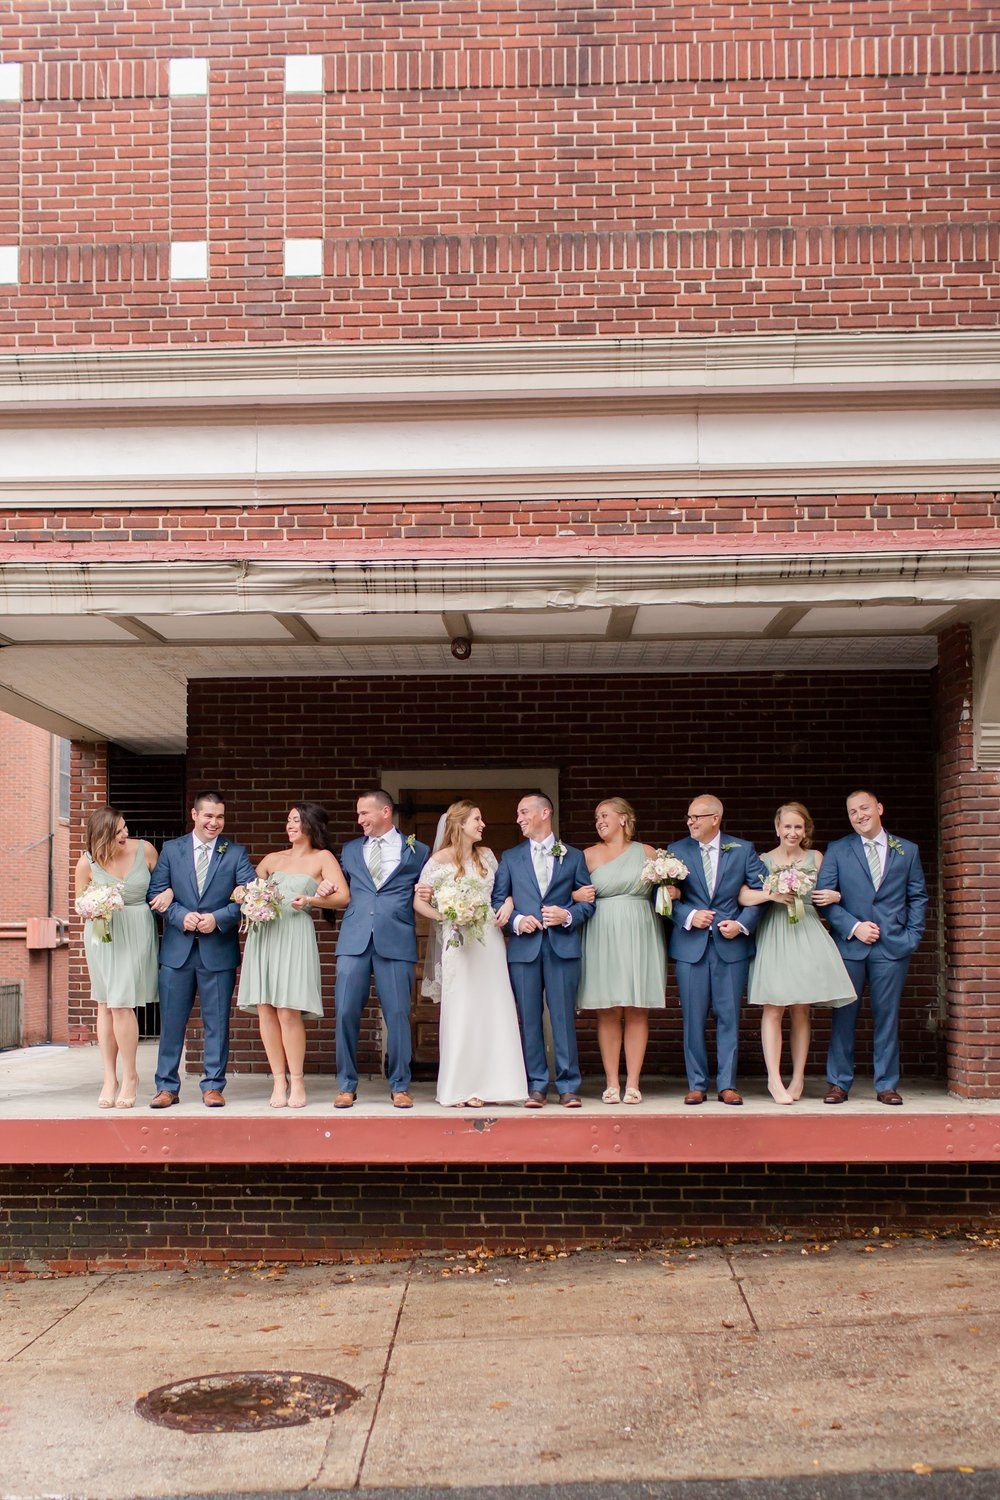 Martin 4-Bridal Party-1213_anna grace photography virginia wedding photographer old town alexandria athenaeum wedding photo.jpg